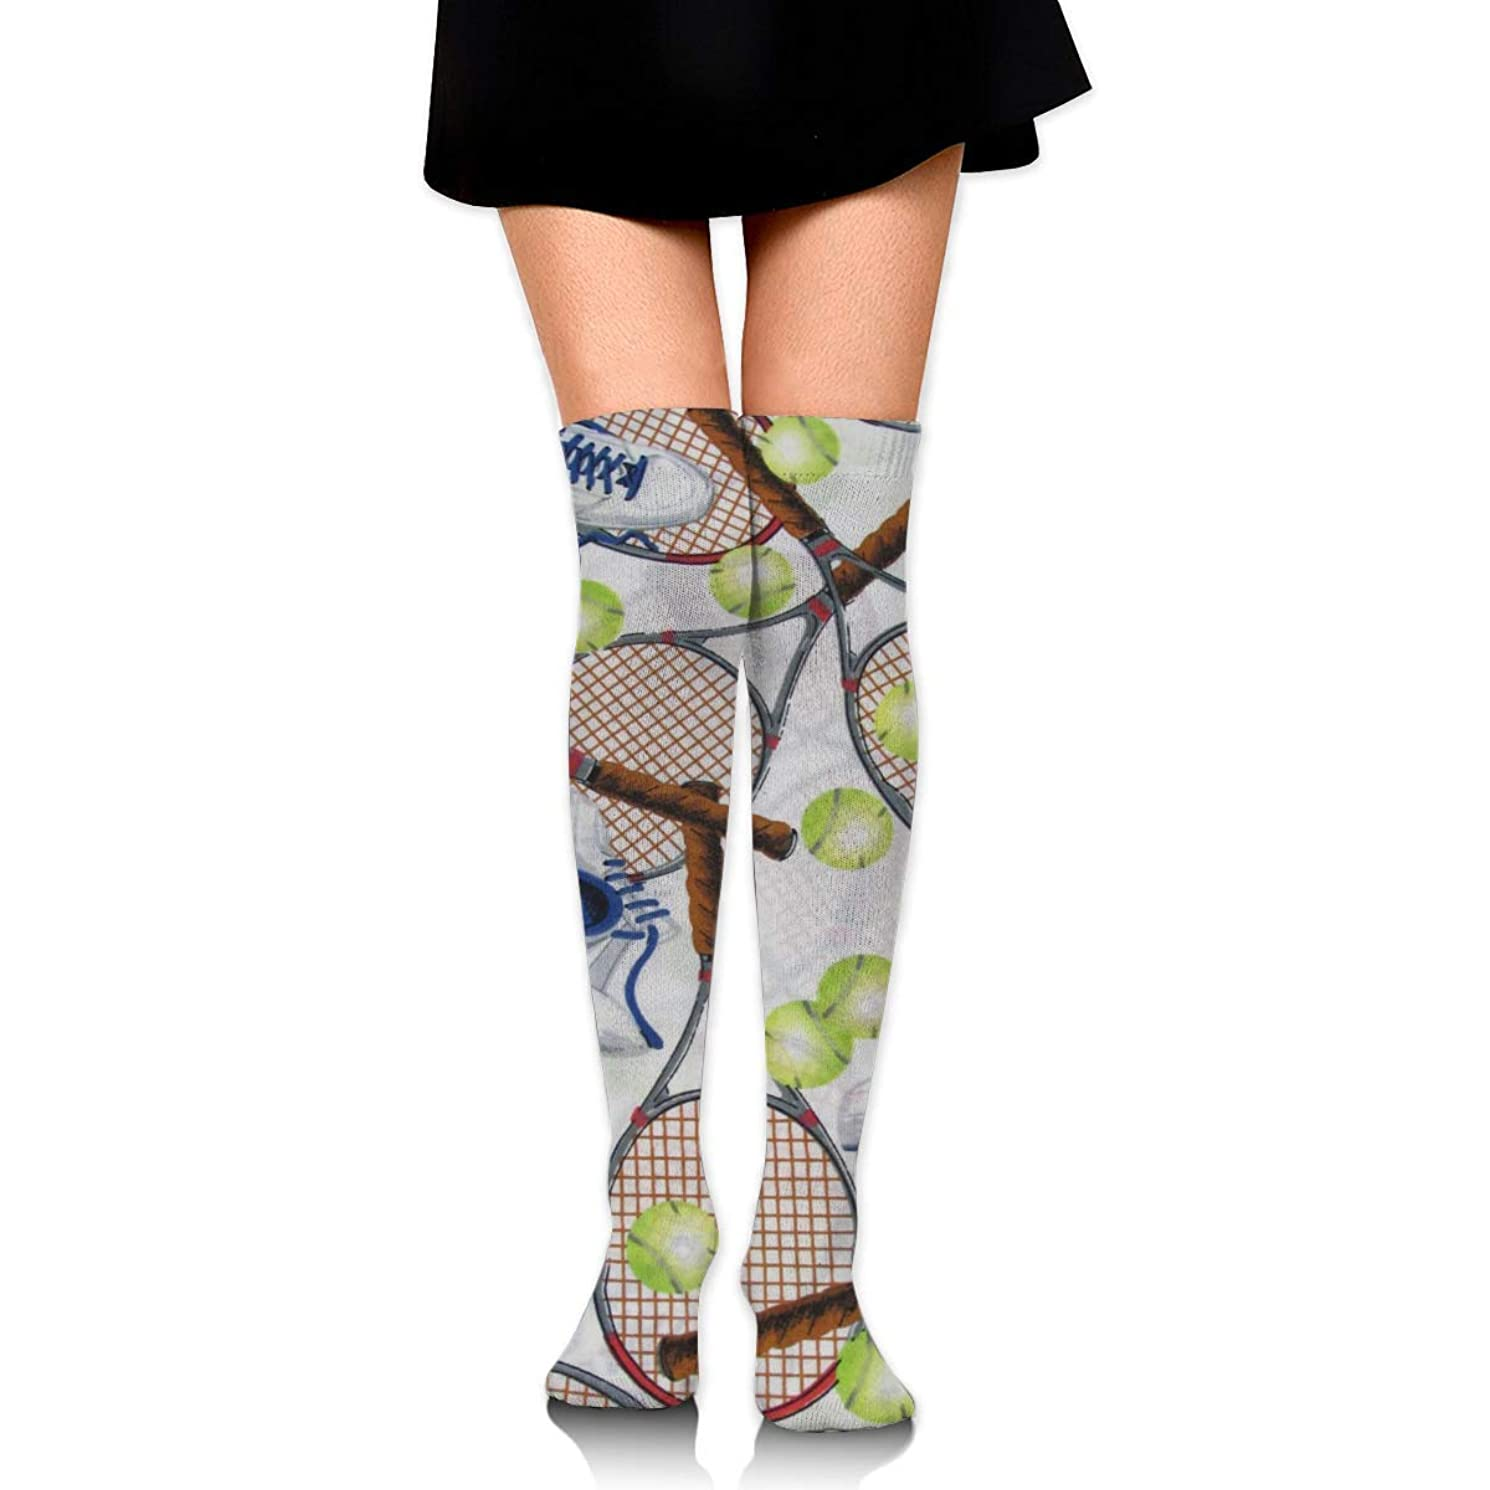 刈り取るまあアブストラクトMKLOS 通気性 圧縮ソックス Breathable Extra Long Cotton Mid Thigh High Crazy Tennis Exotic Psychedelic Print Compression High Tube Thigh Boot Stockings Knee High Women Girl